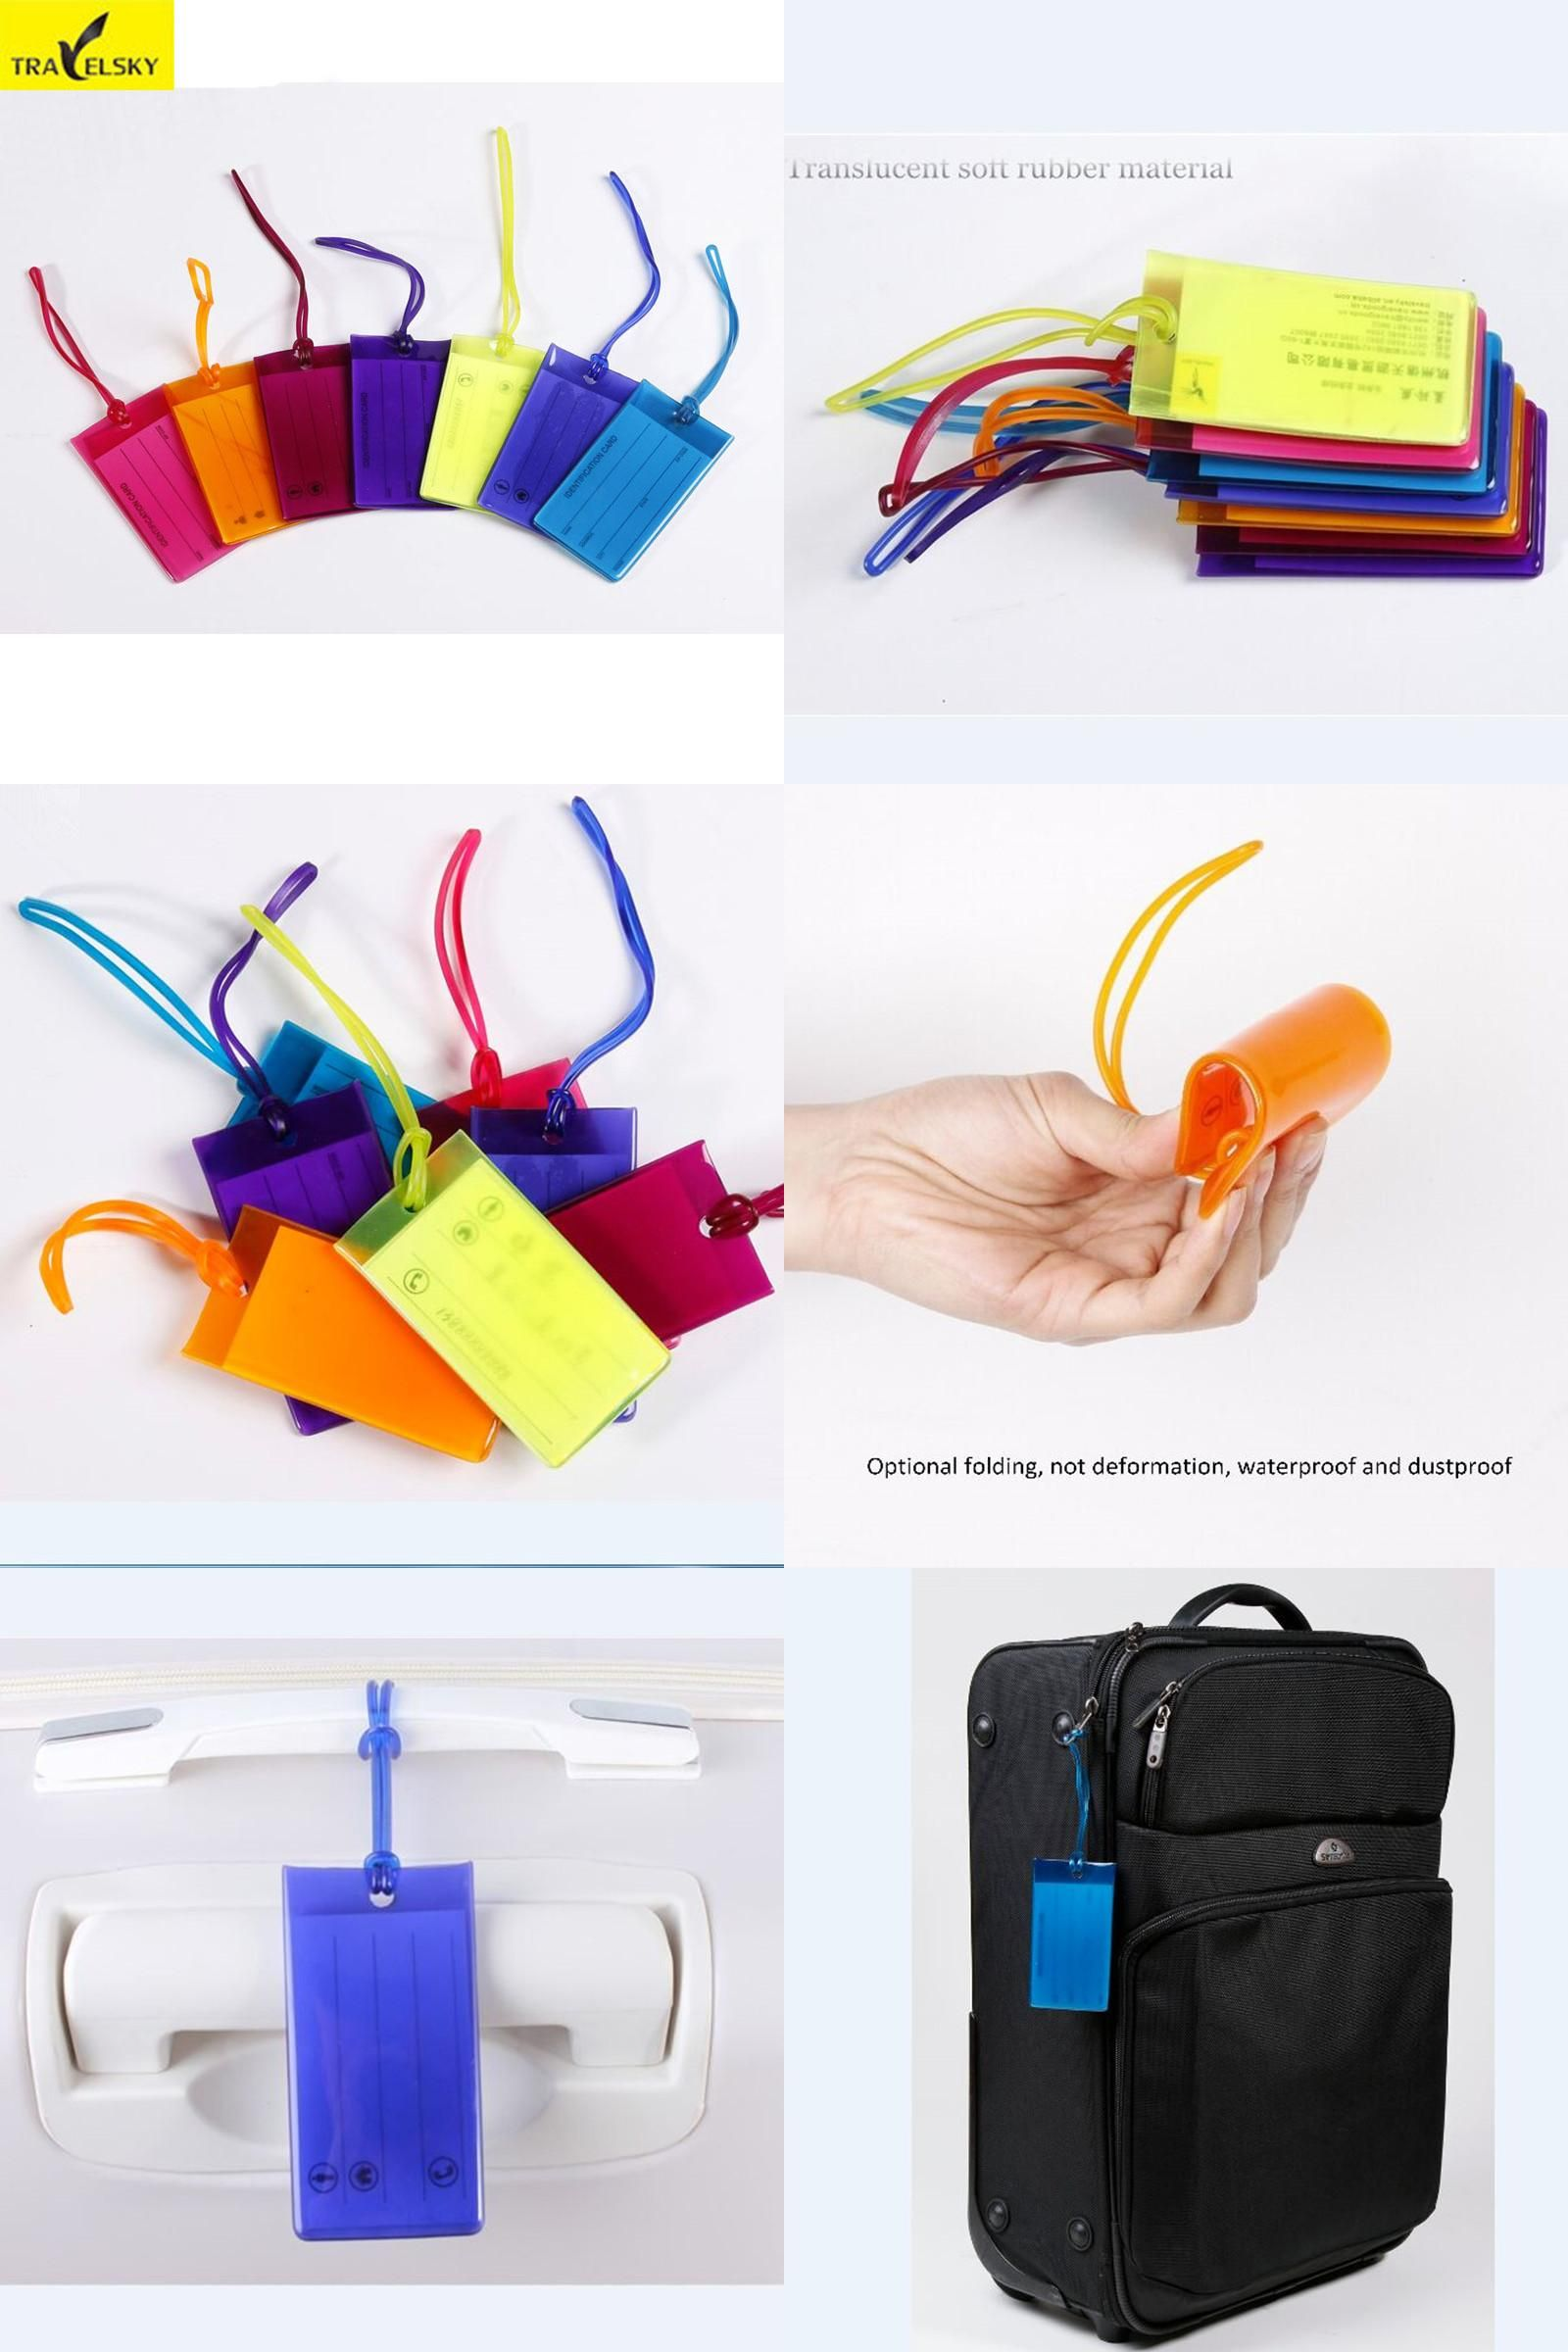 25e4787013bb  Visit to Buy  Luggage tag PVC material multicolor and mix fashion travel  bags tags